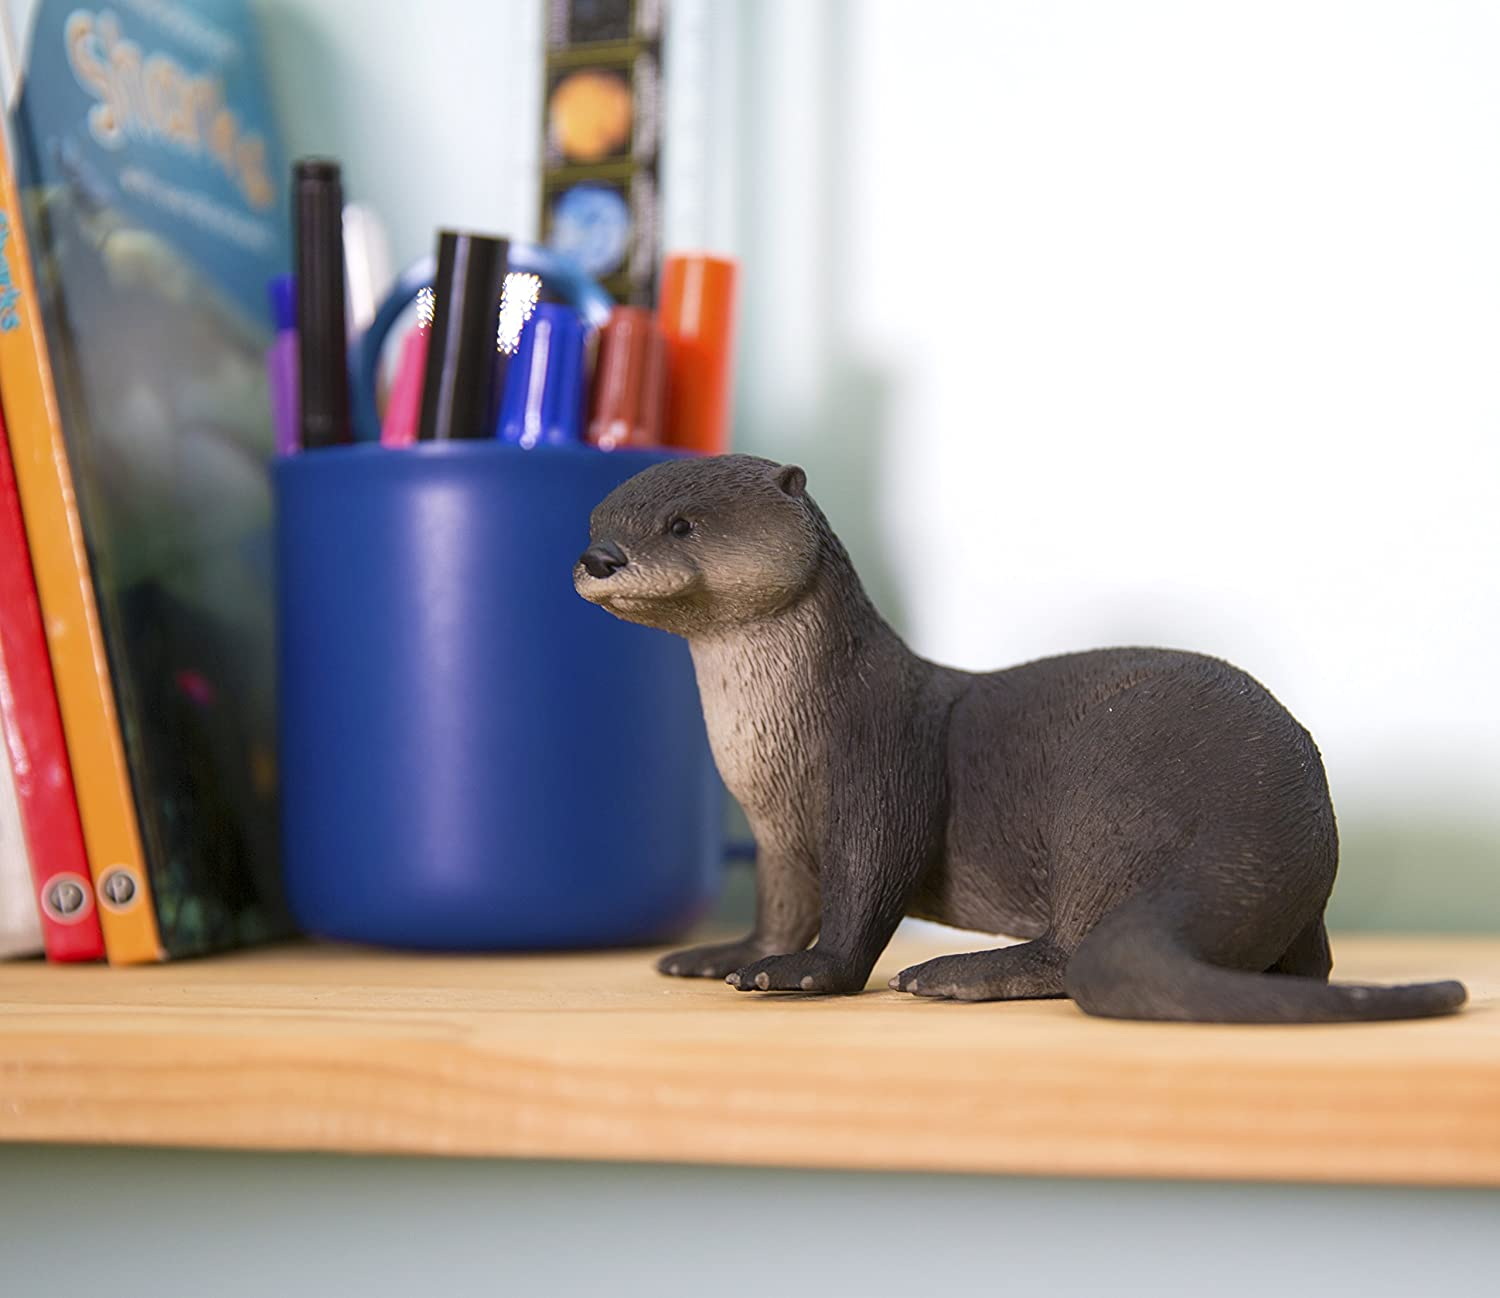 Realistic Hand Painted Toy Figurine Model Lead and BPA Free Materials Quality Construction from Phthalate Safari Ltd for Ages 3 and Up River Otter